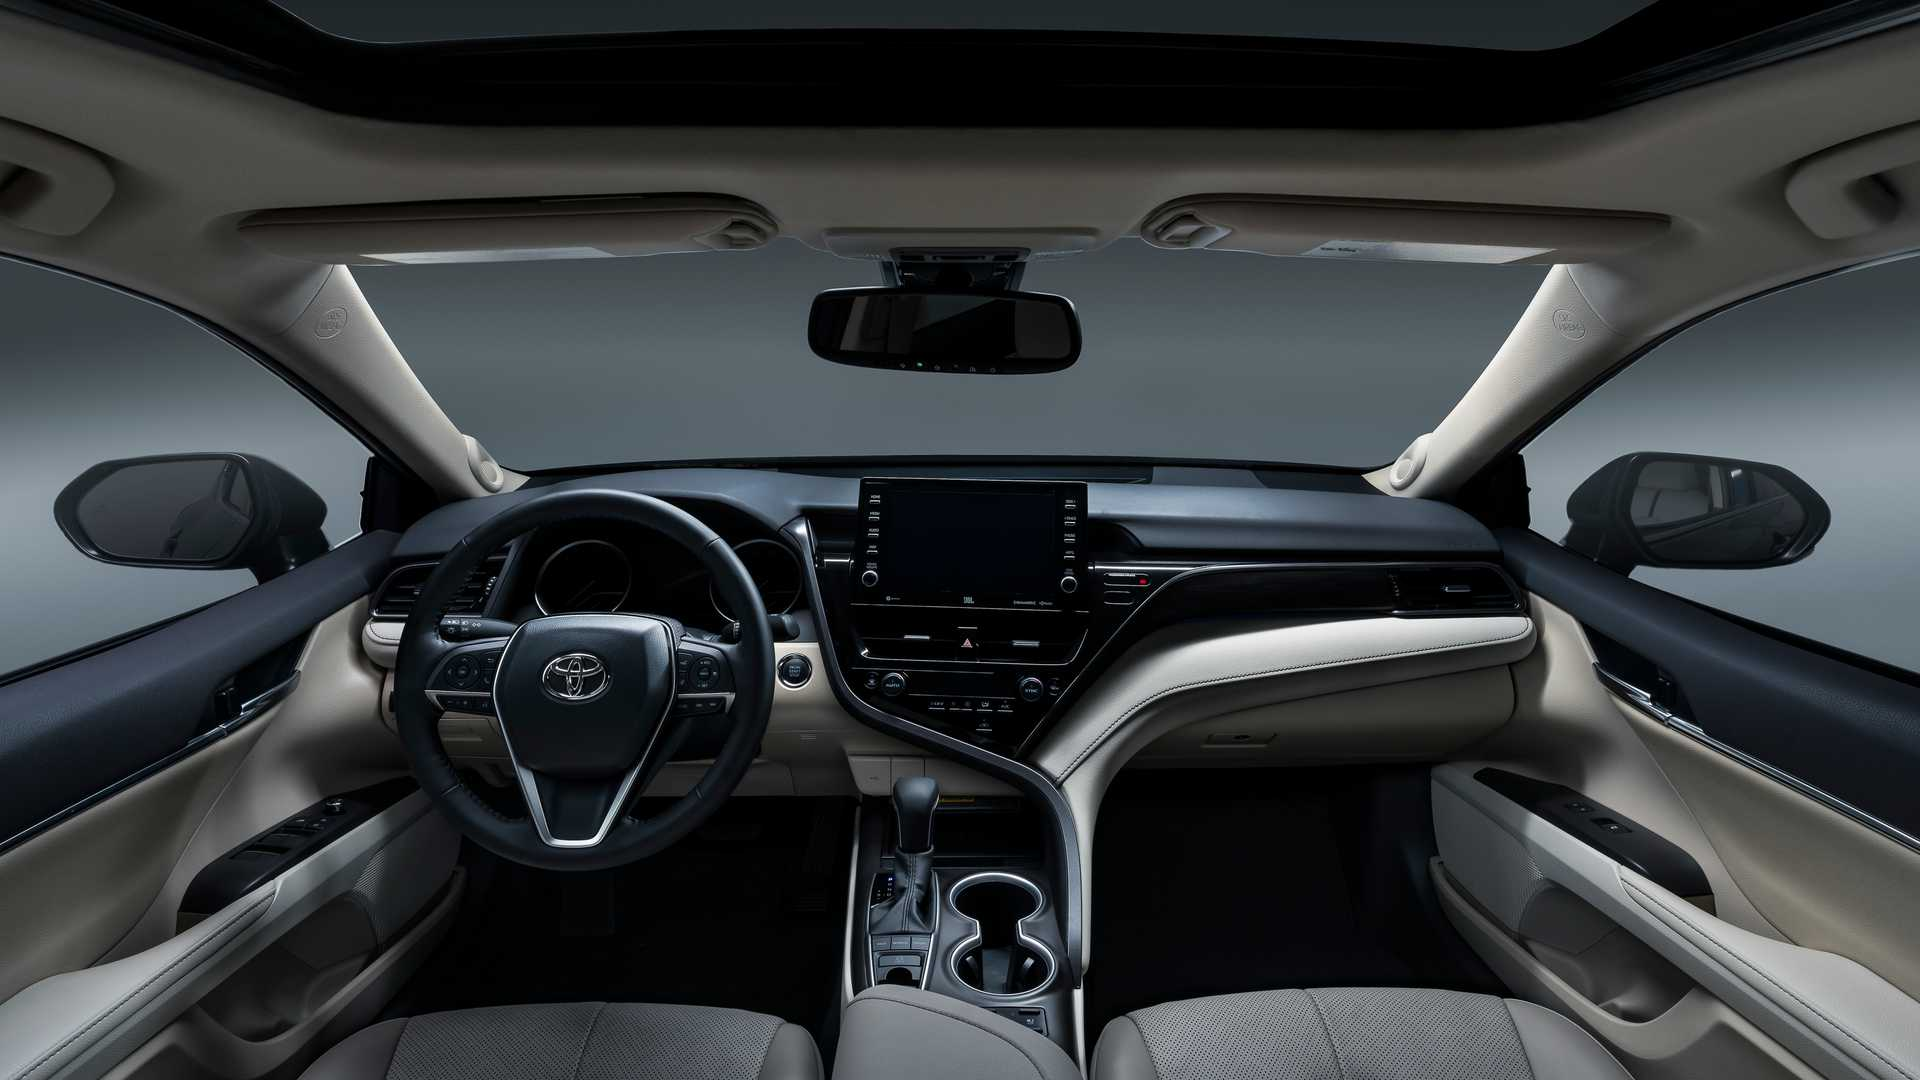 2021 Toyota Camry Arrives as XSE Hybrid and Introduces Safety Sense 2.5+ - autoevolution